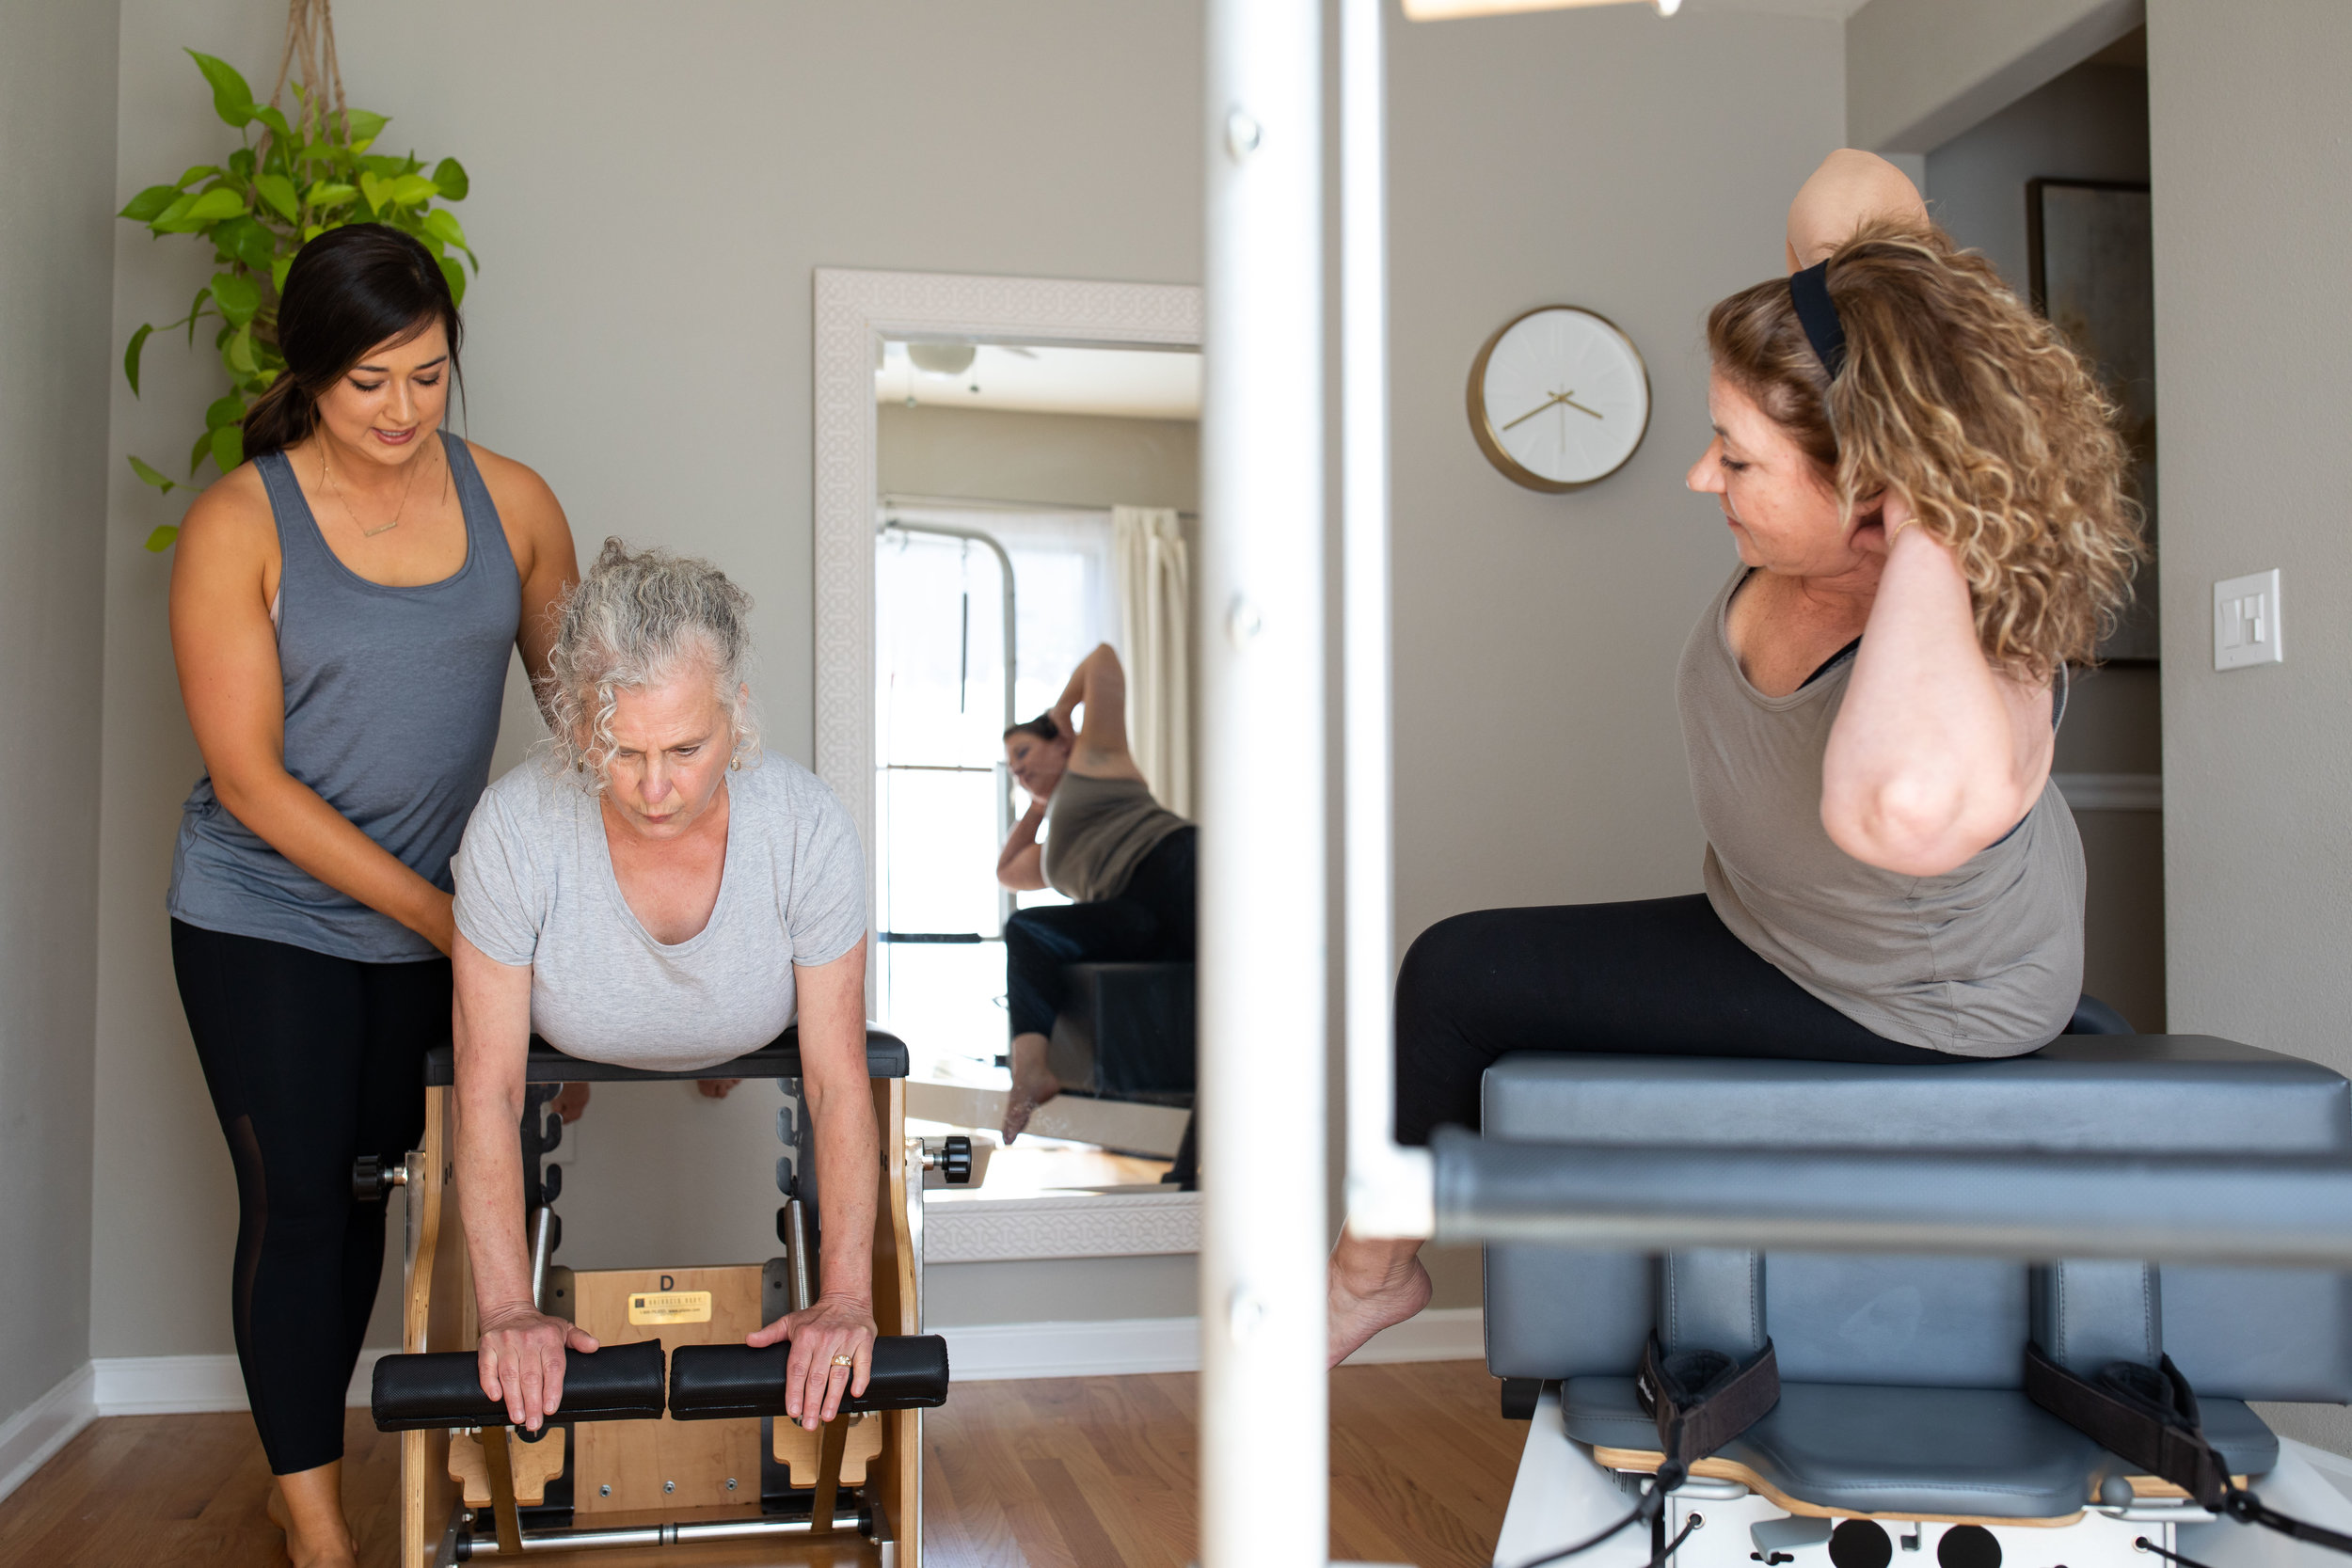 duet sessions - You and another Pilates enthusiast will receive a 55-minute session. Each session is tailored to your needs and goals while utilizing multiple Pilates equipment in order to get a well-rounded experience during your workout.